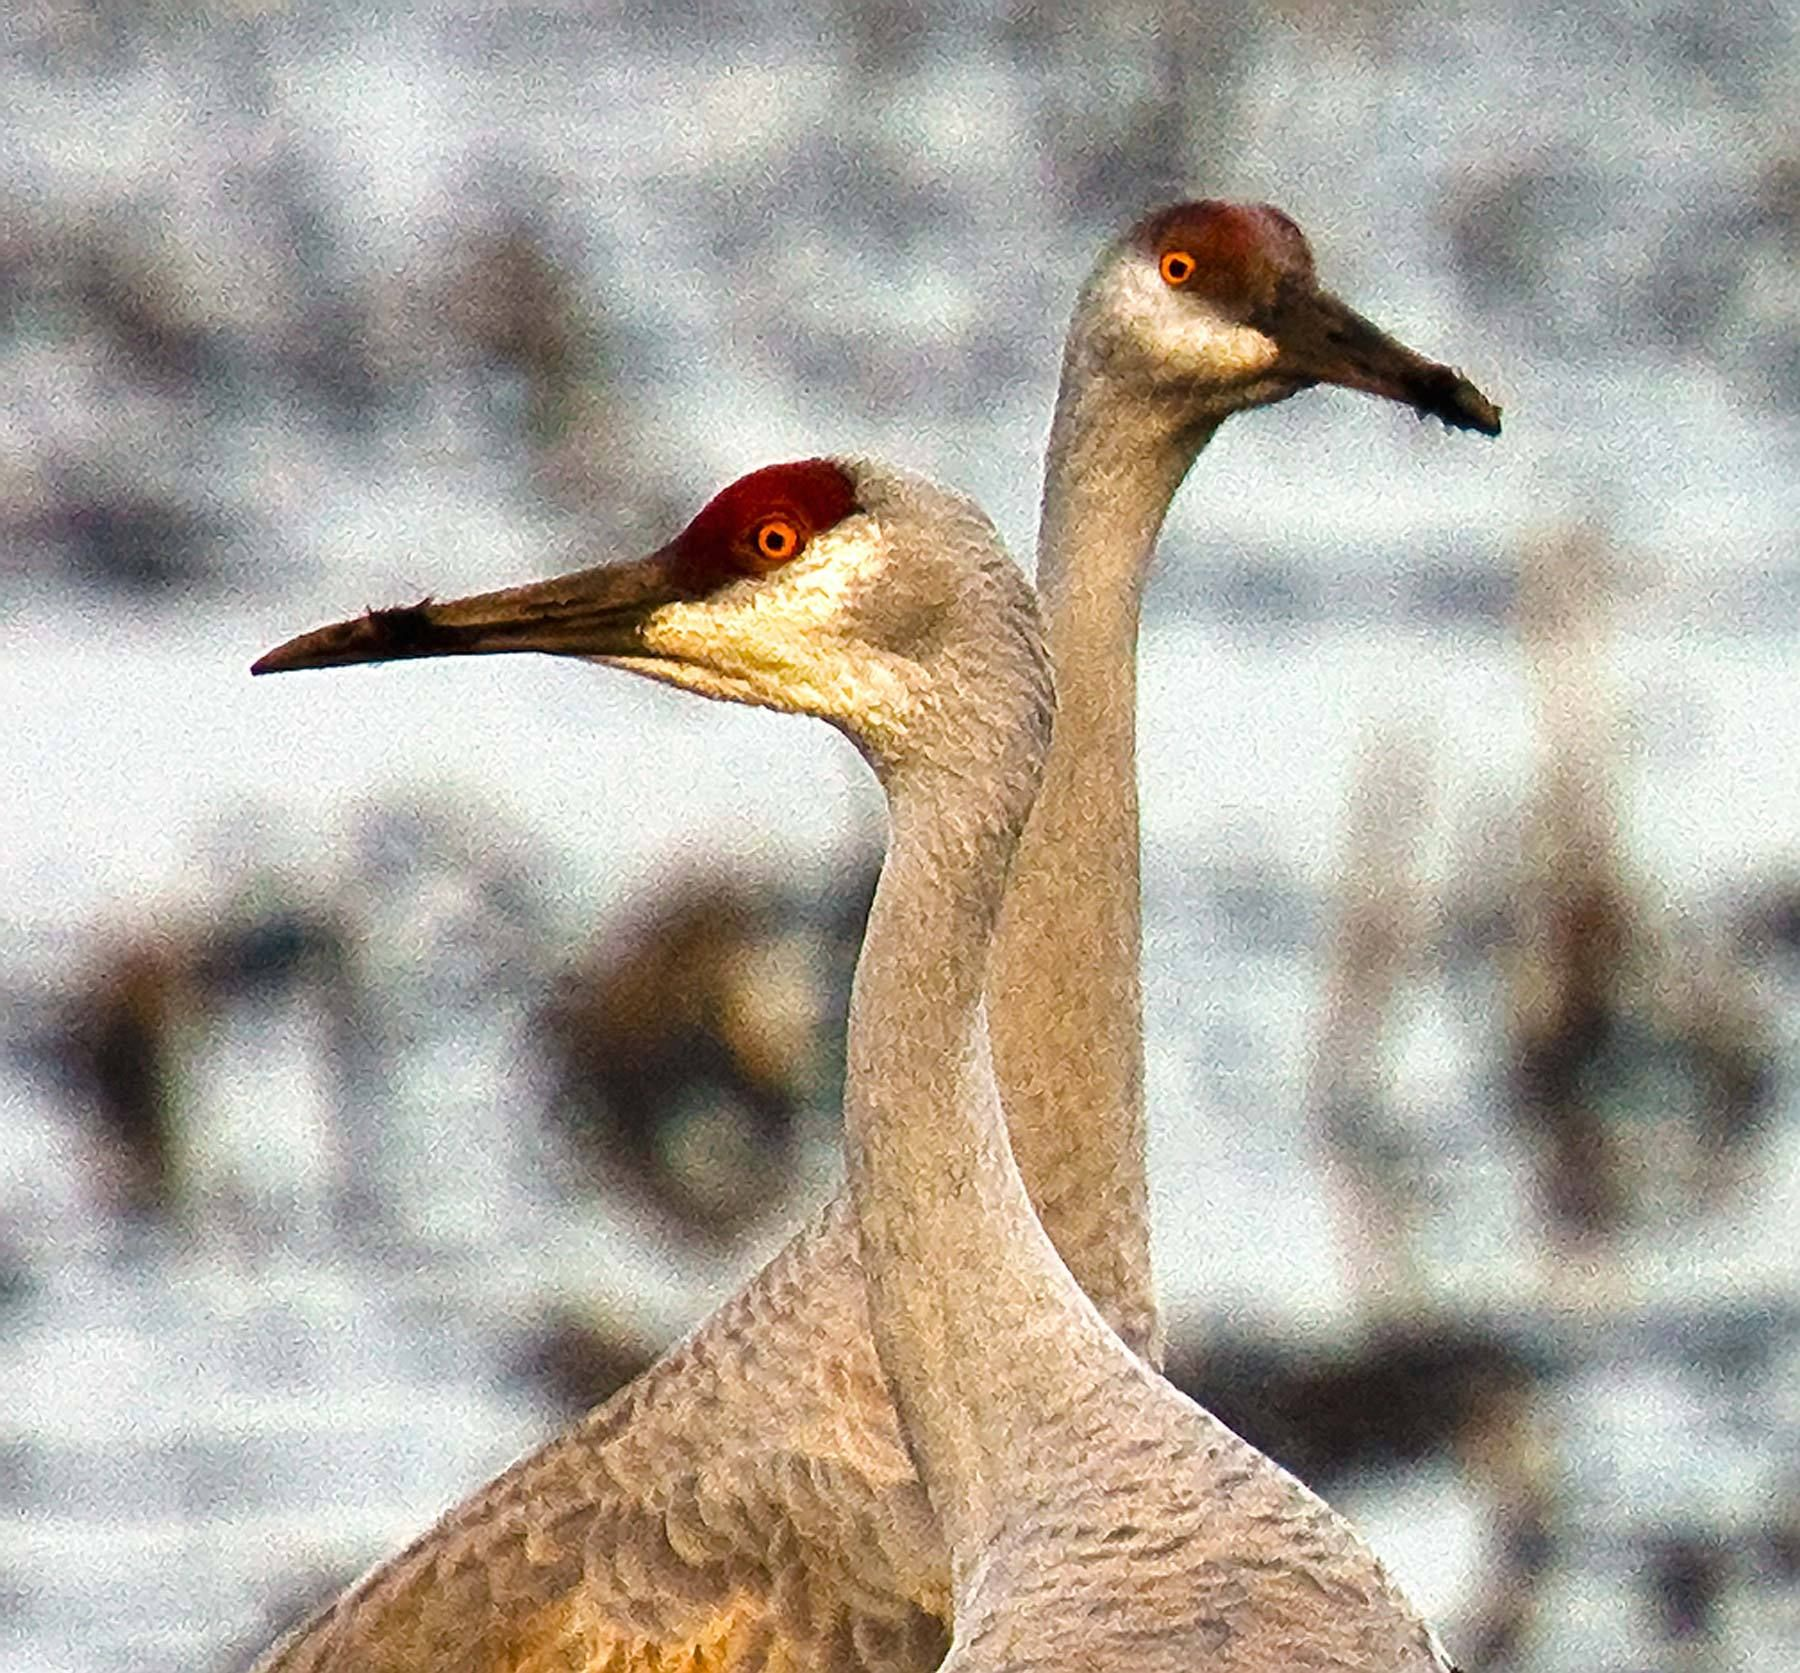 241_1heads_up_sandhill_cranes_isenberg_reserve_california.jpg